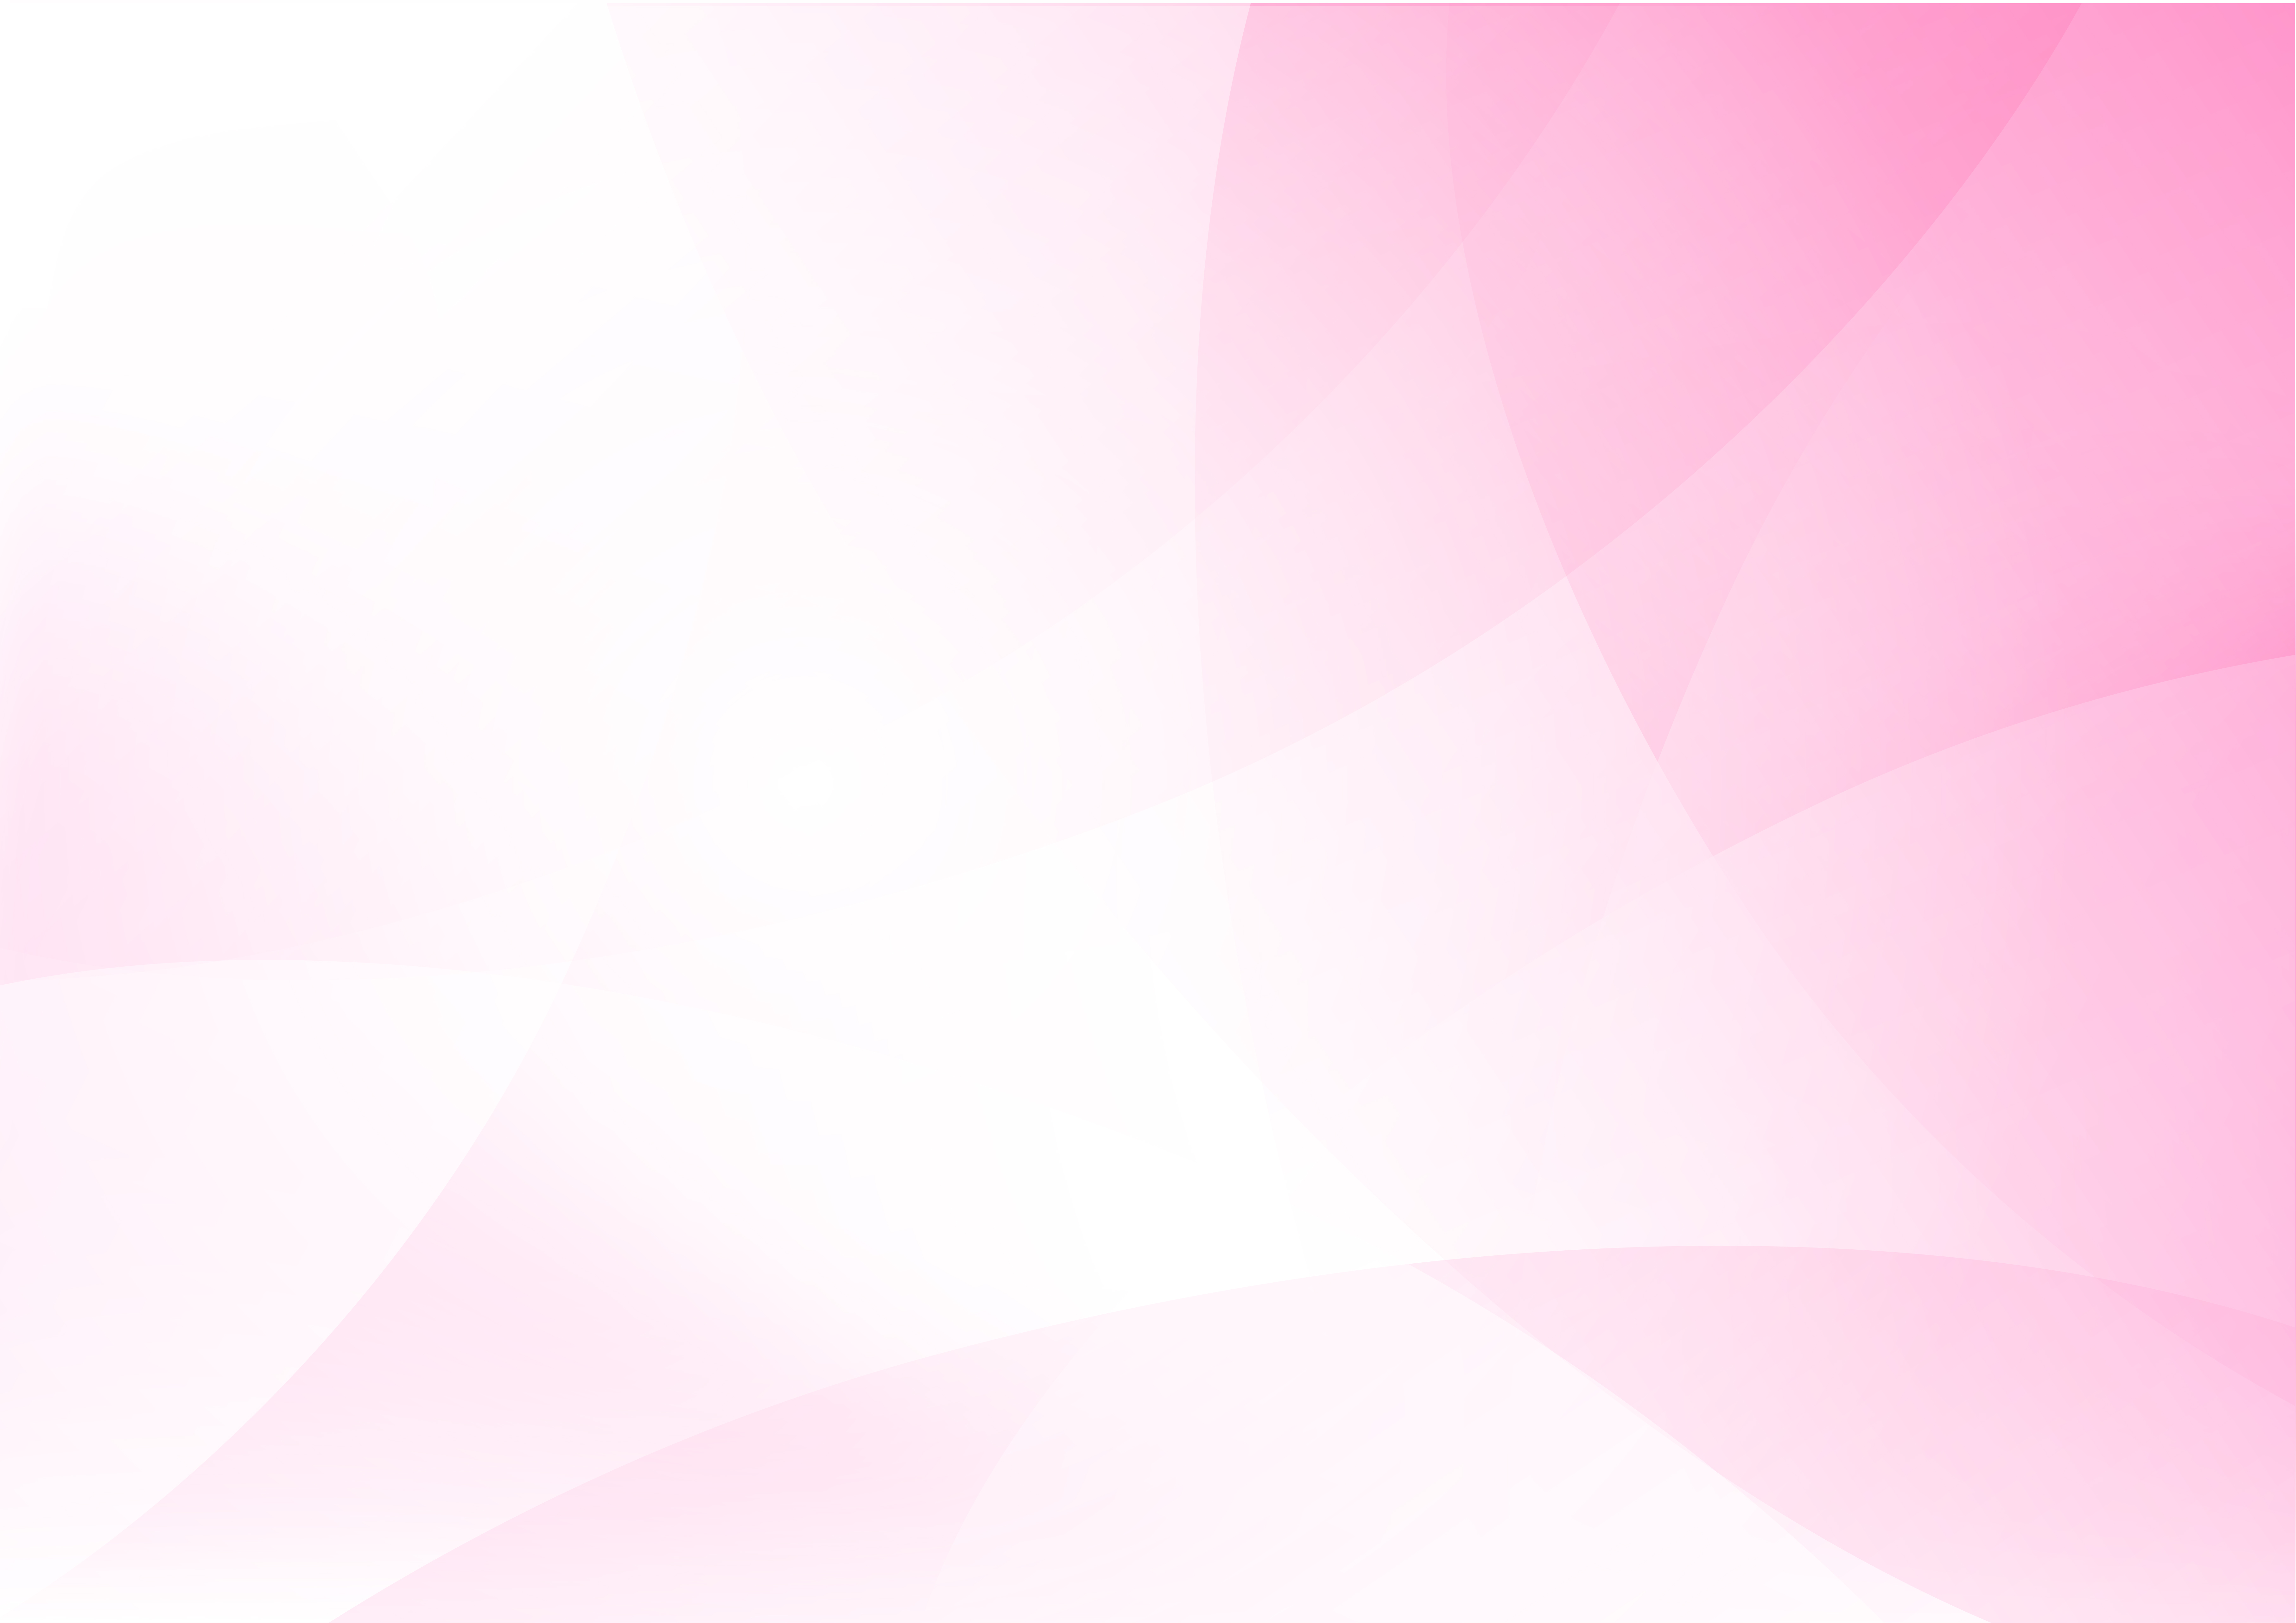 curve and blend light pink abstract background 011